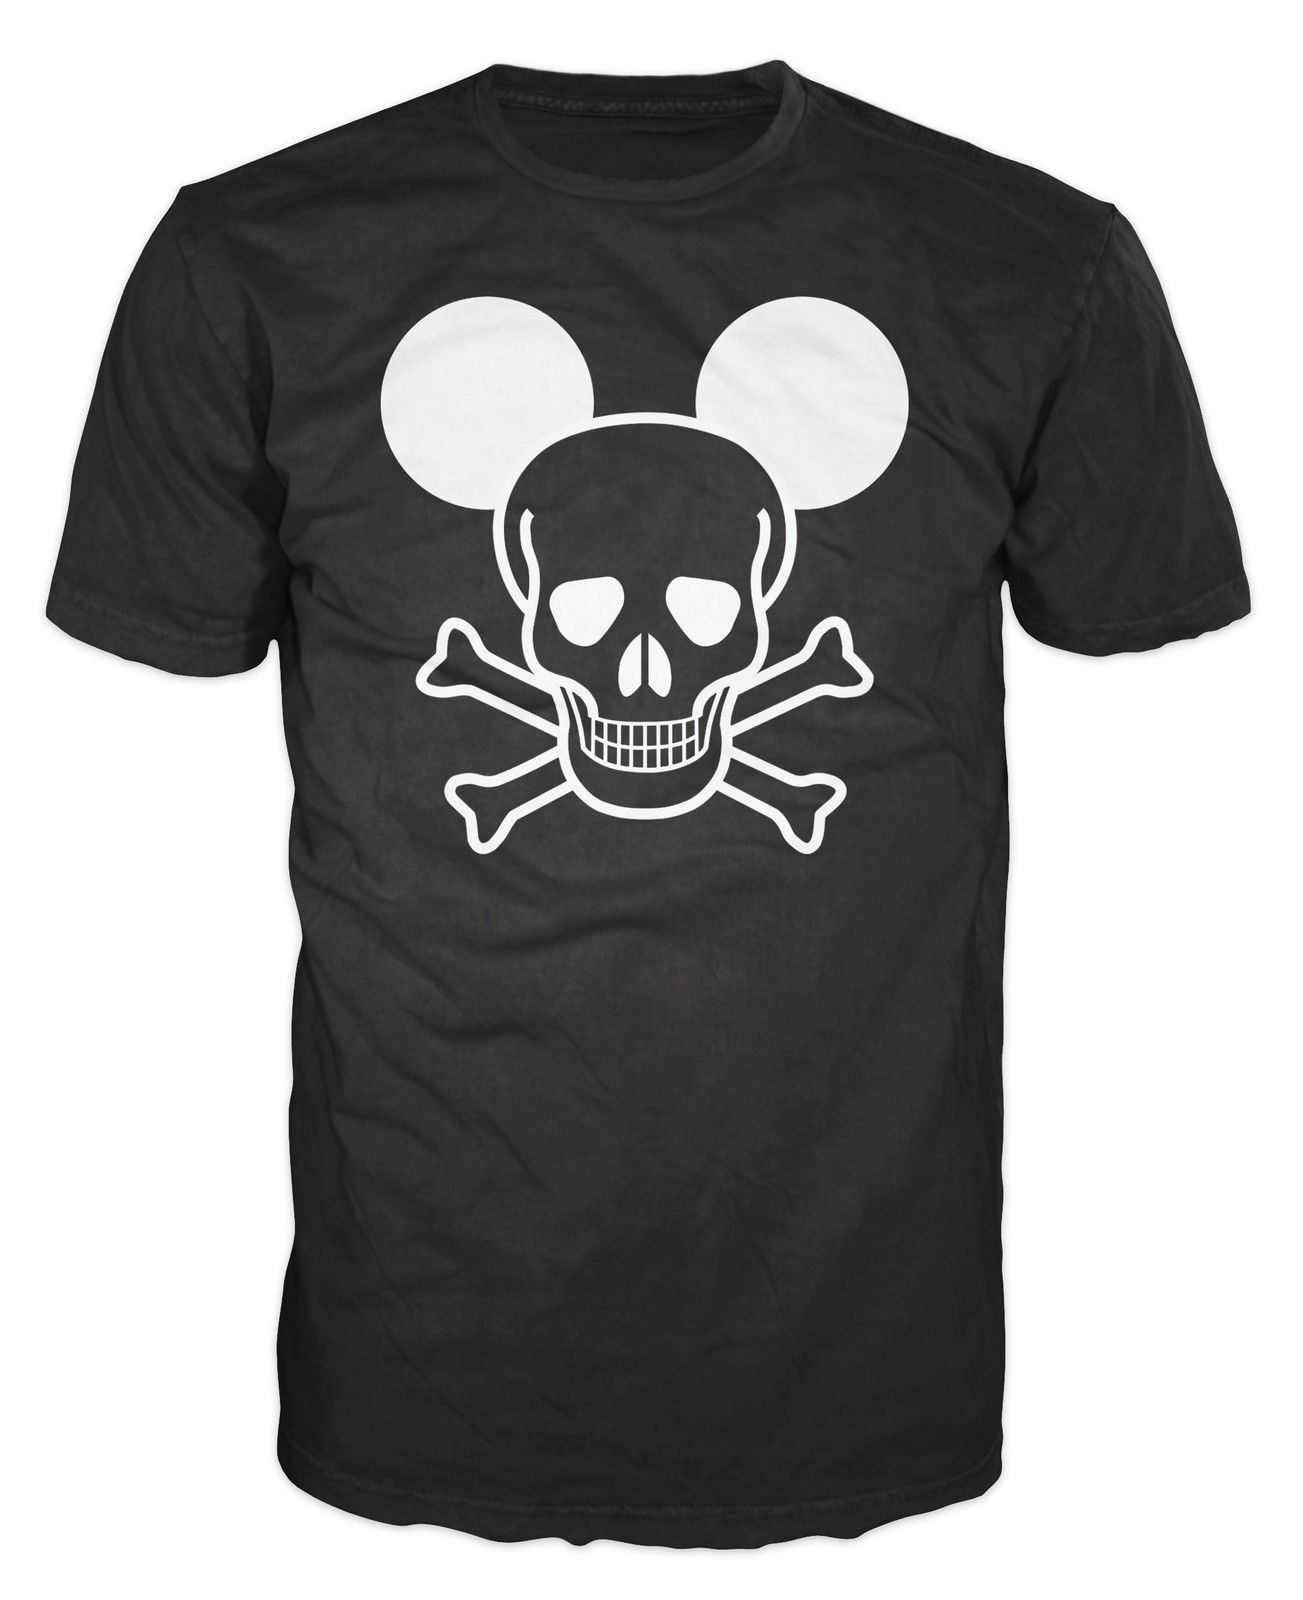 Crossbones & Skull with Ears Funny Joke Spoof Biker Bad Funny Print Tops Men top tee